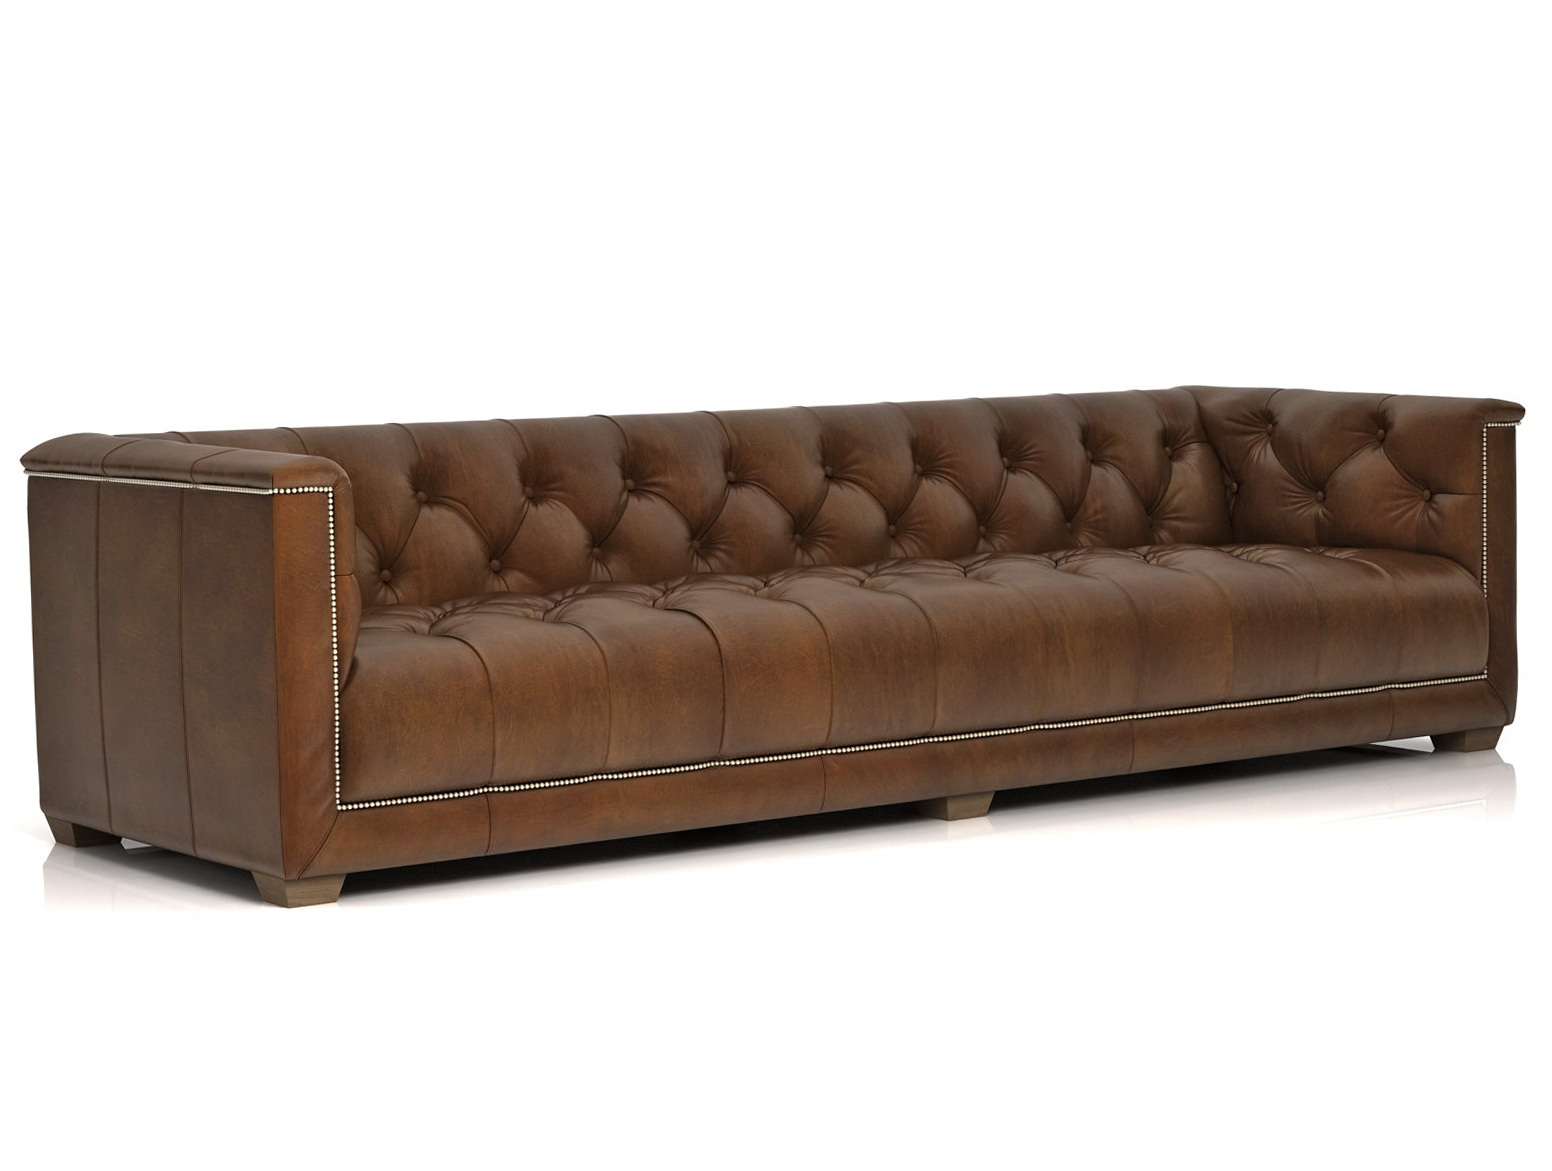 Restoration Hardware Sofa Leather